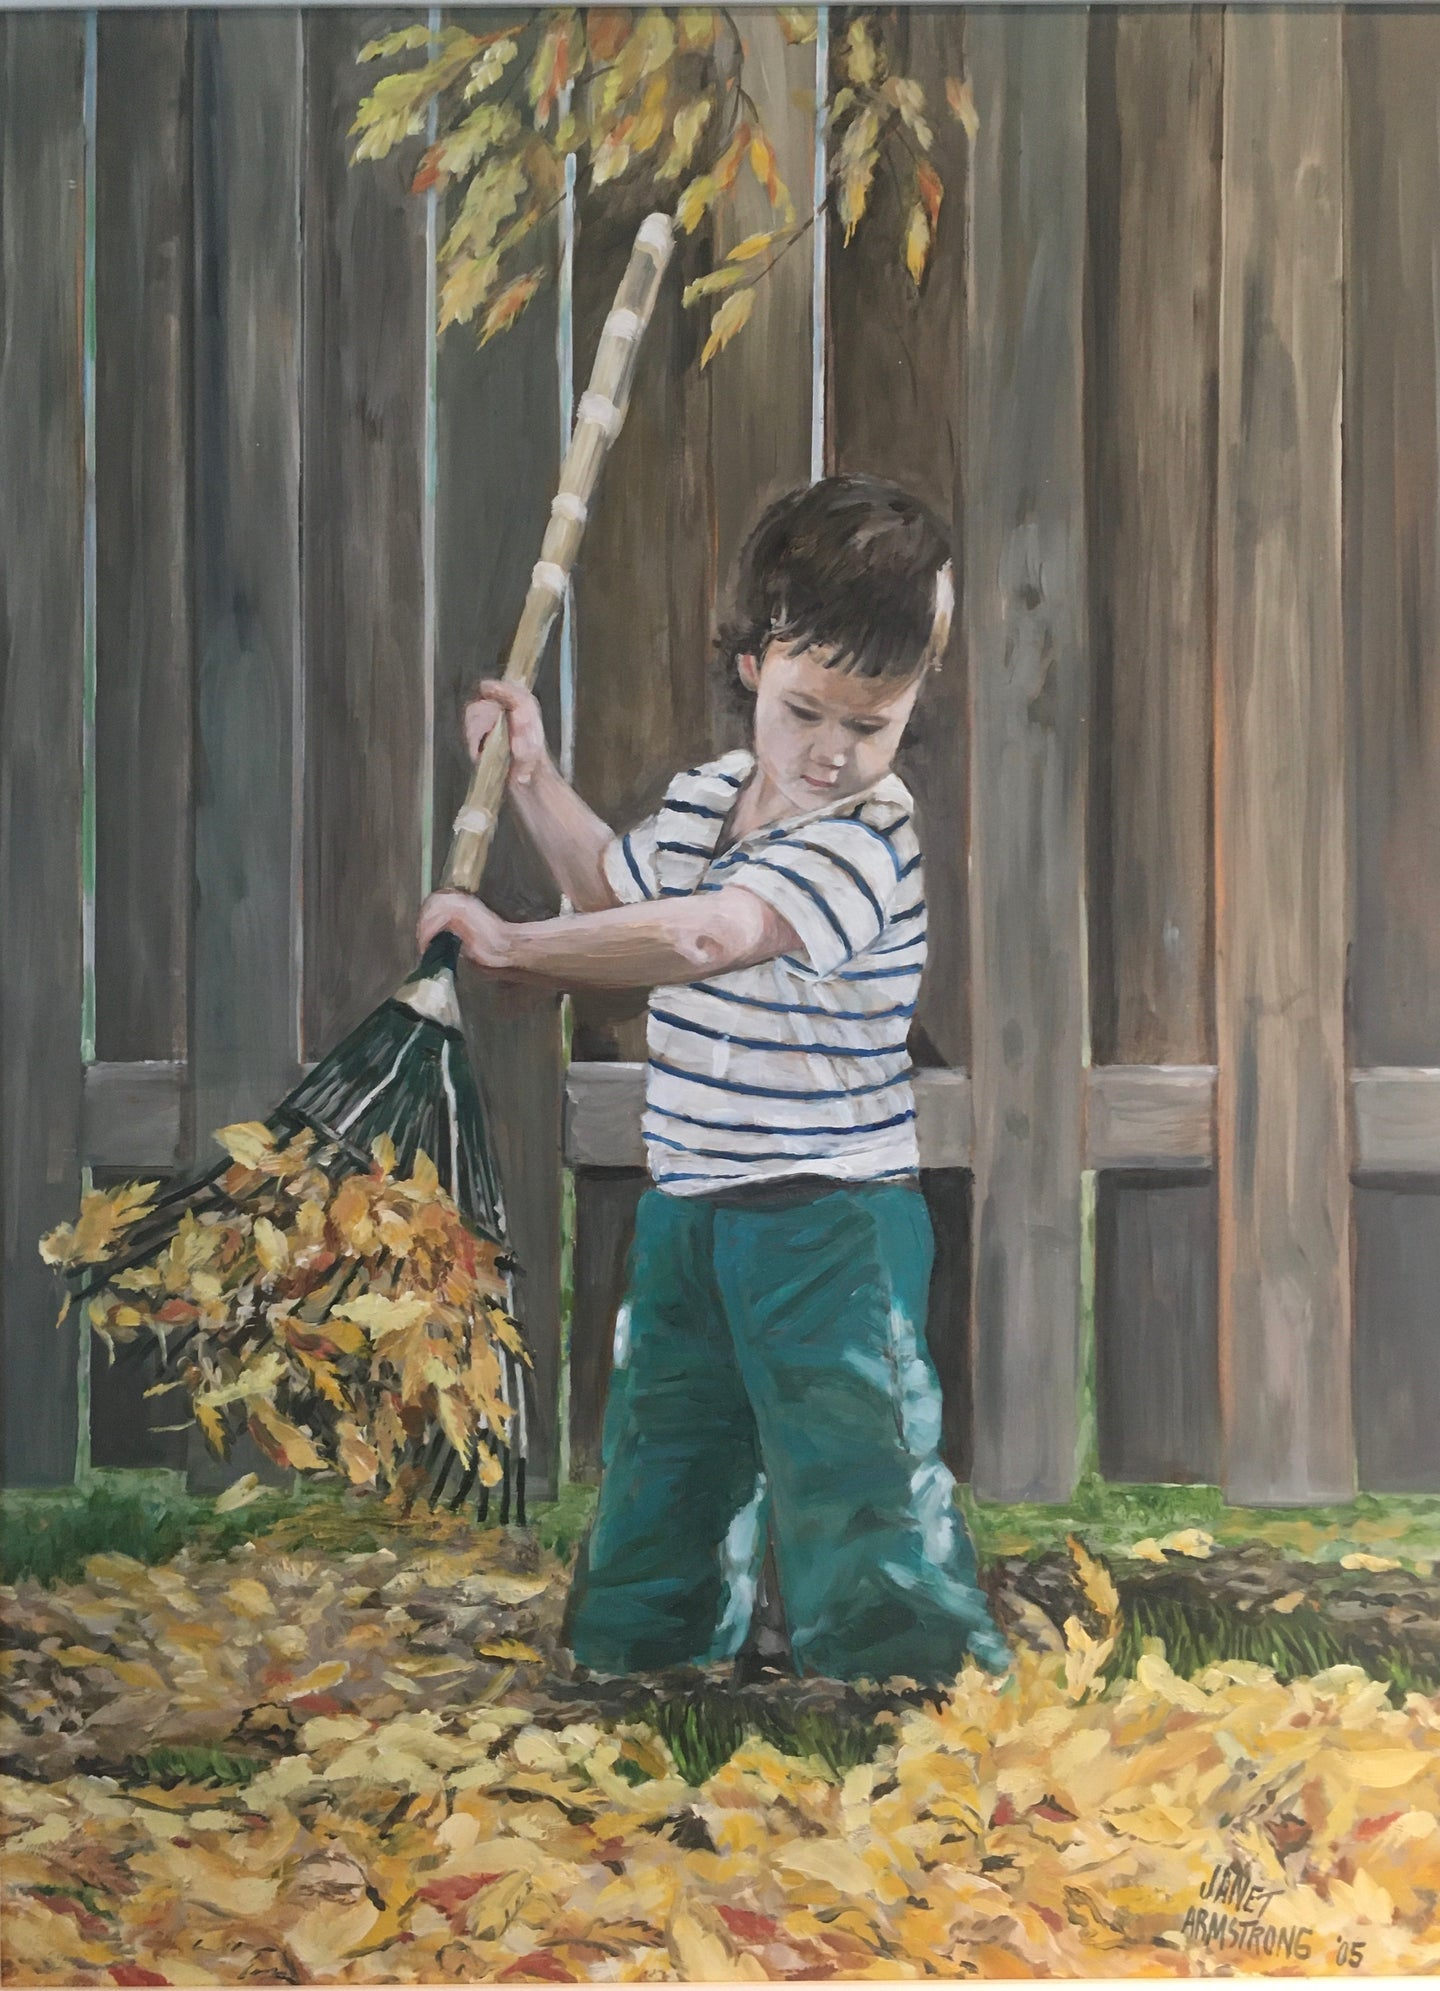 Raking Leaves, NFS - Private Collection